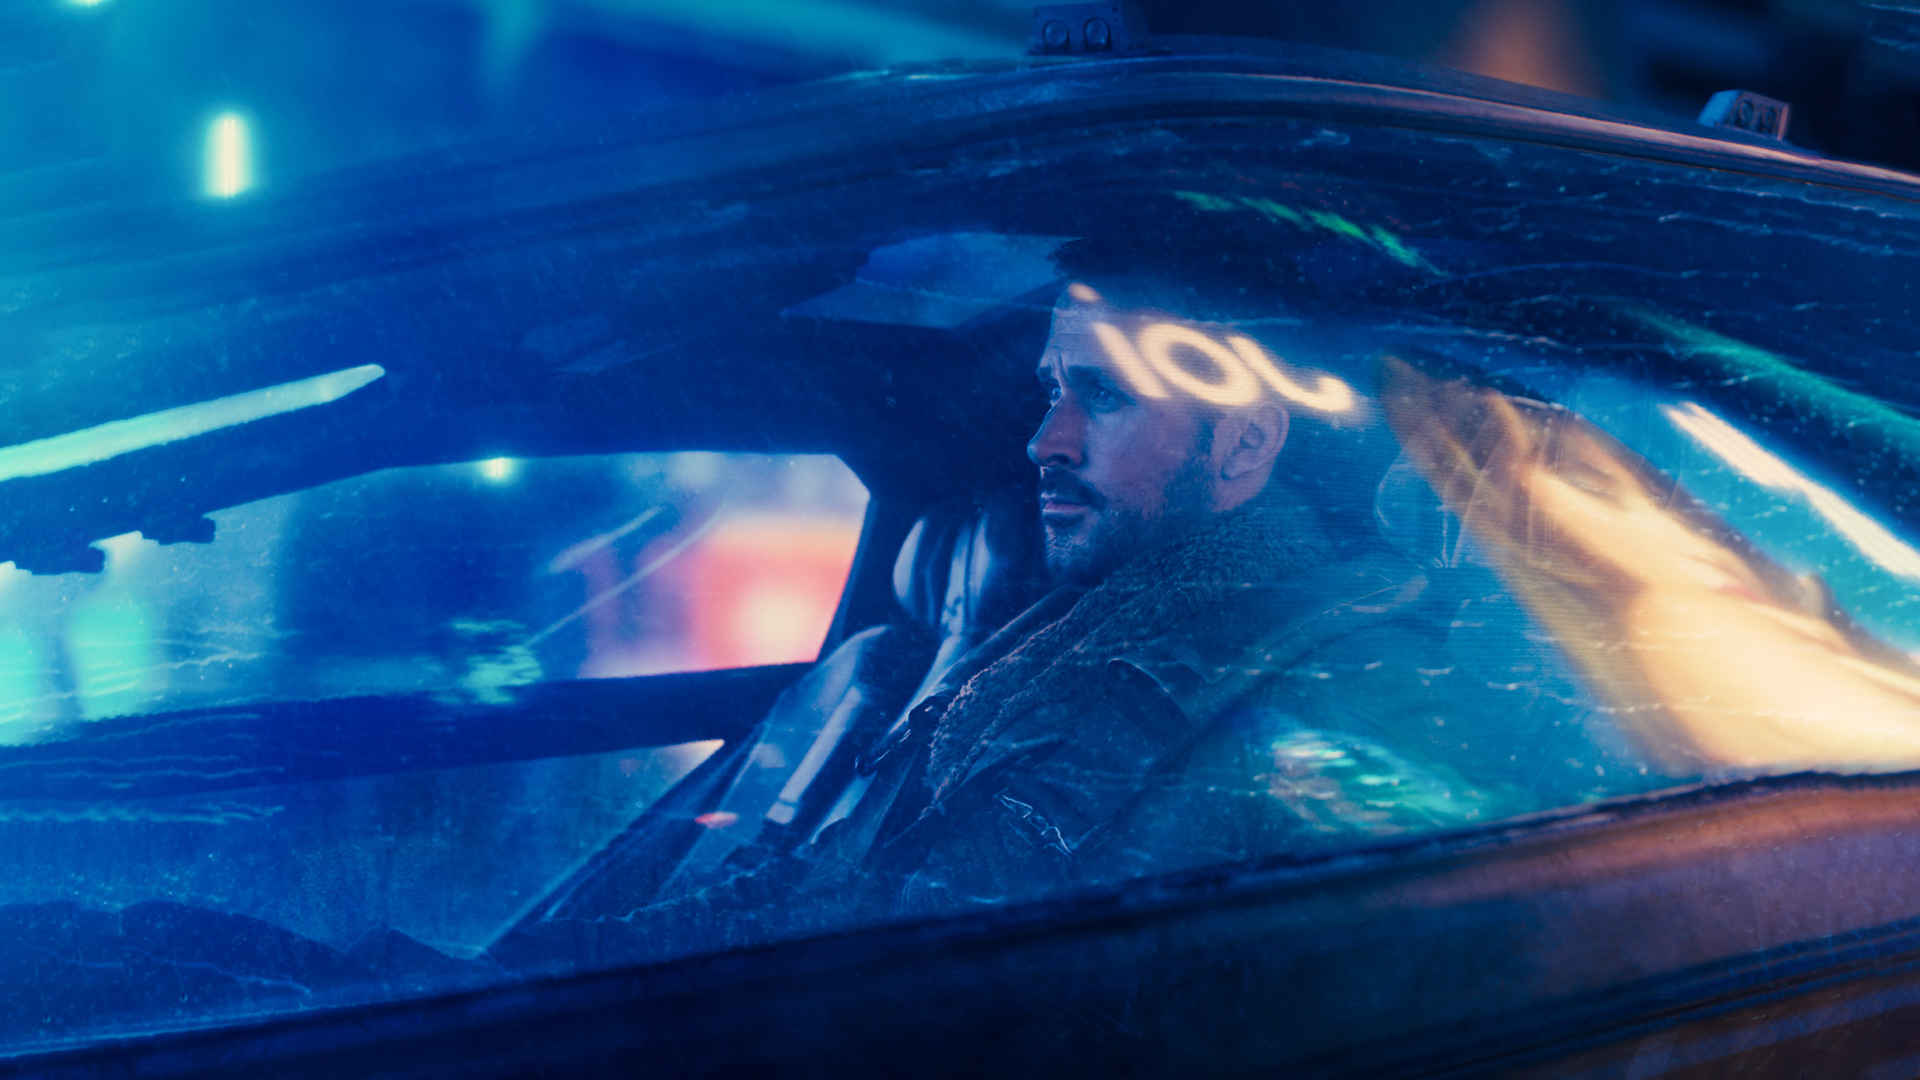 blade runner 2049 free wallpaper